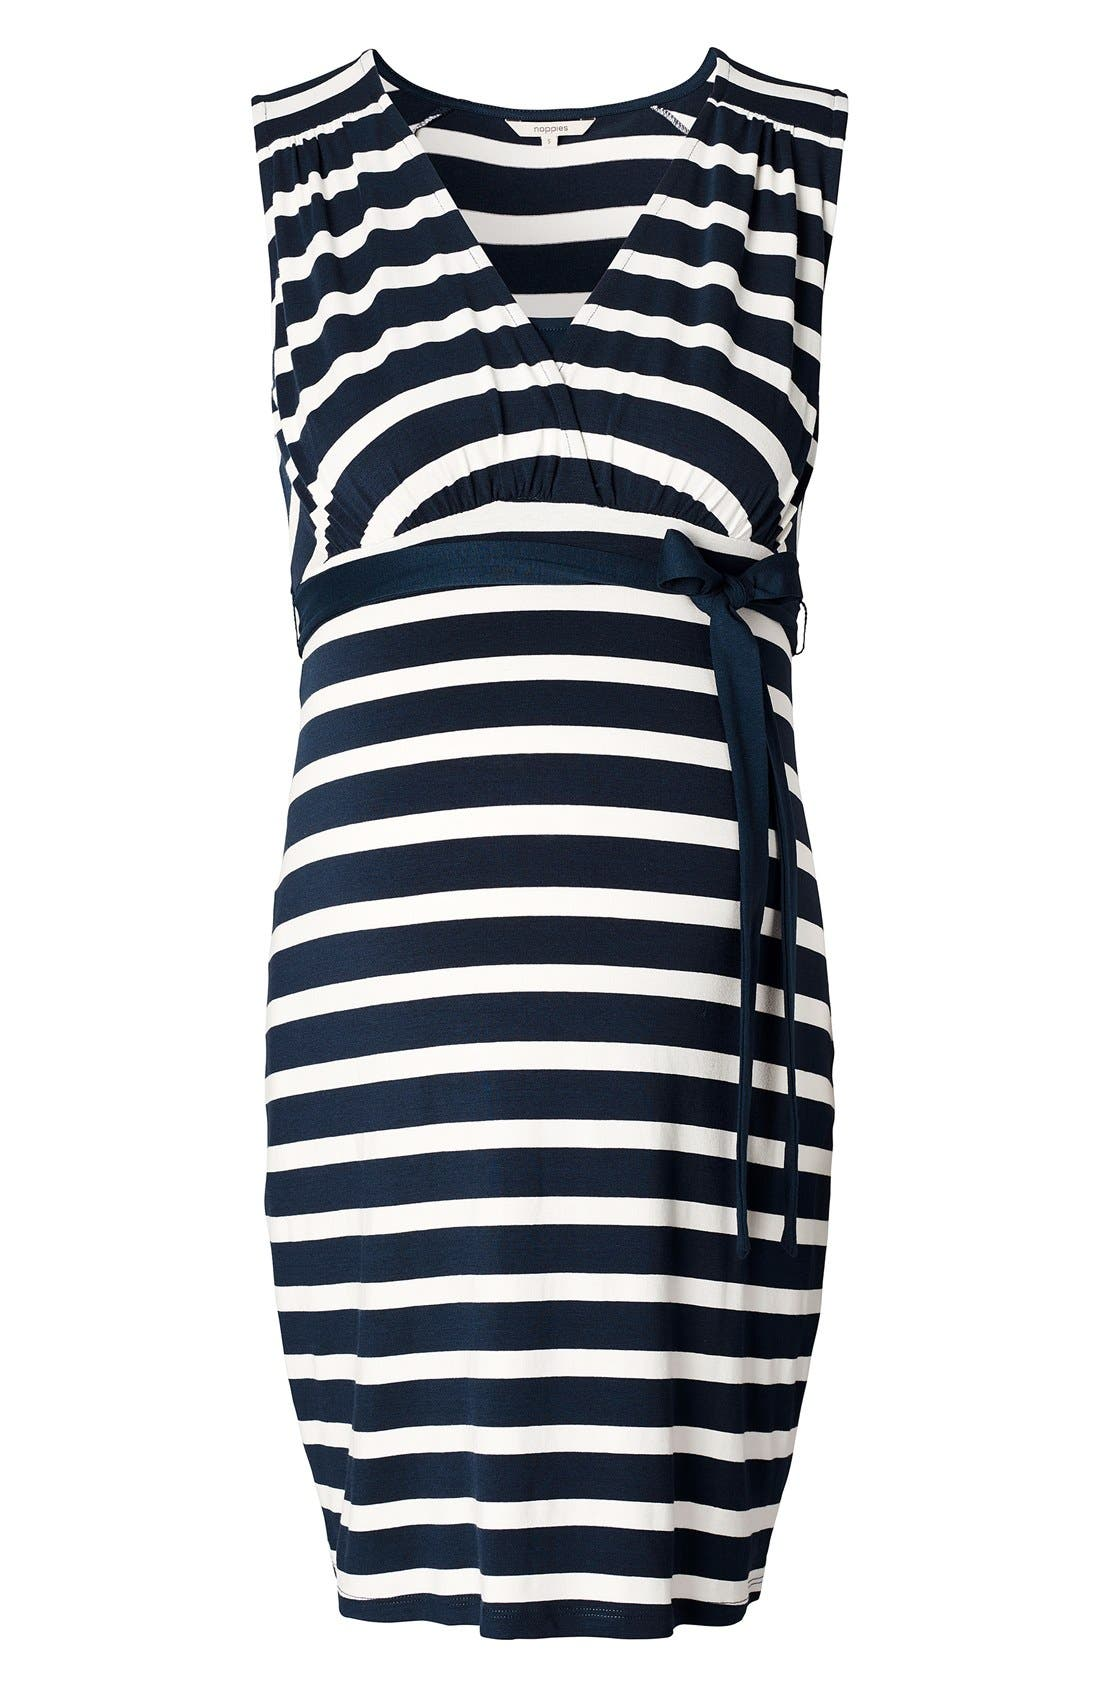 Noppies 'Lara' Stripe Maternity Dress